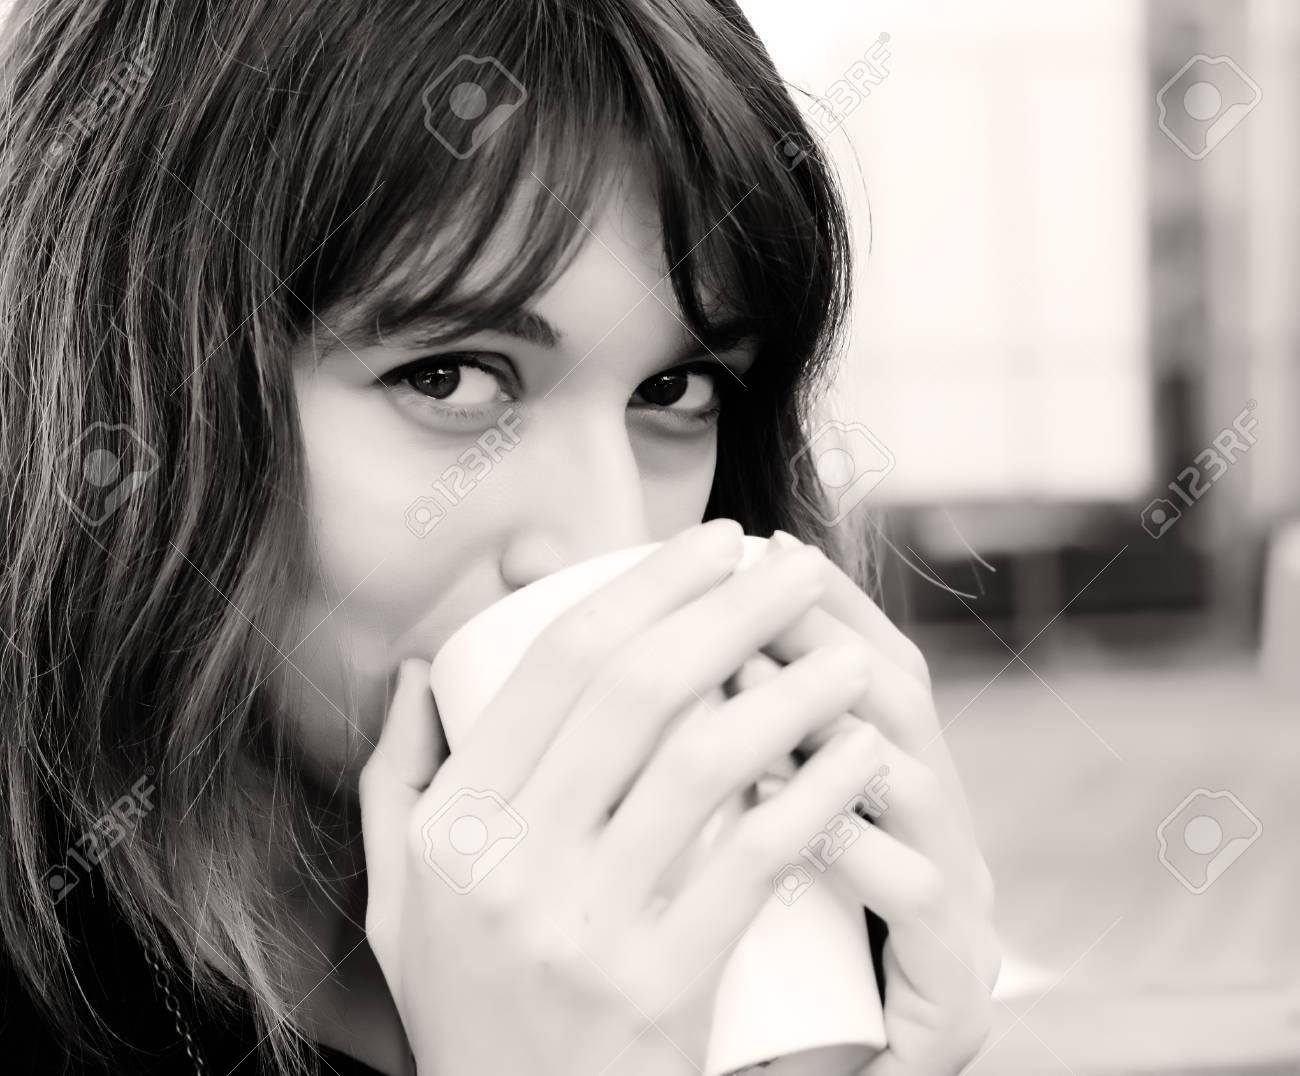 young girl with a cup of coffee. Focus on the eyes. Stock Photo - 12441348